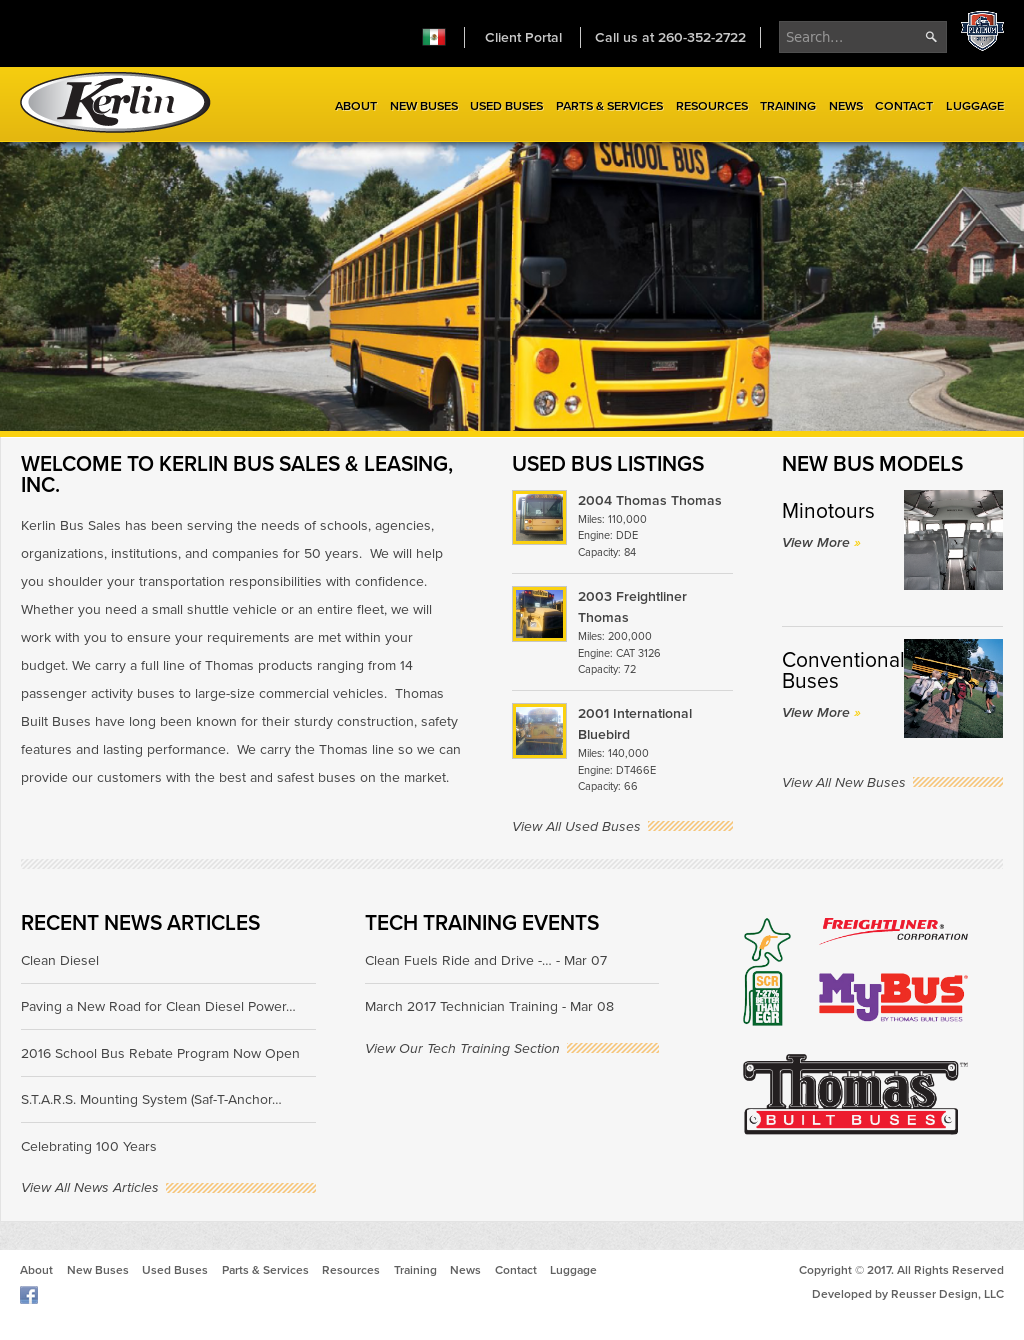 Kerlin Bus Sales & Leasing Competitors, Revenue and